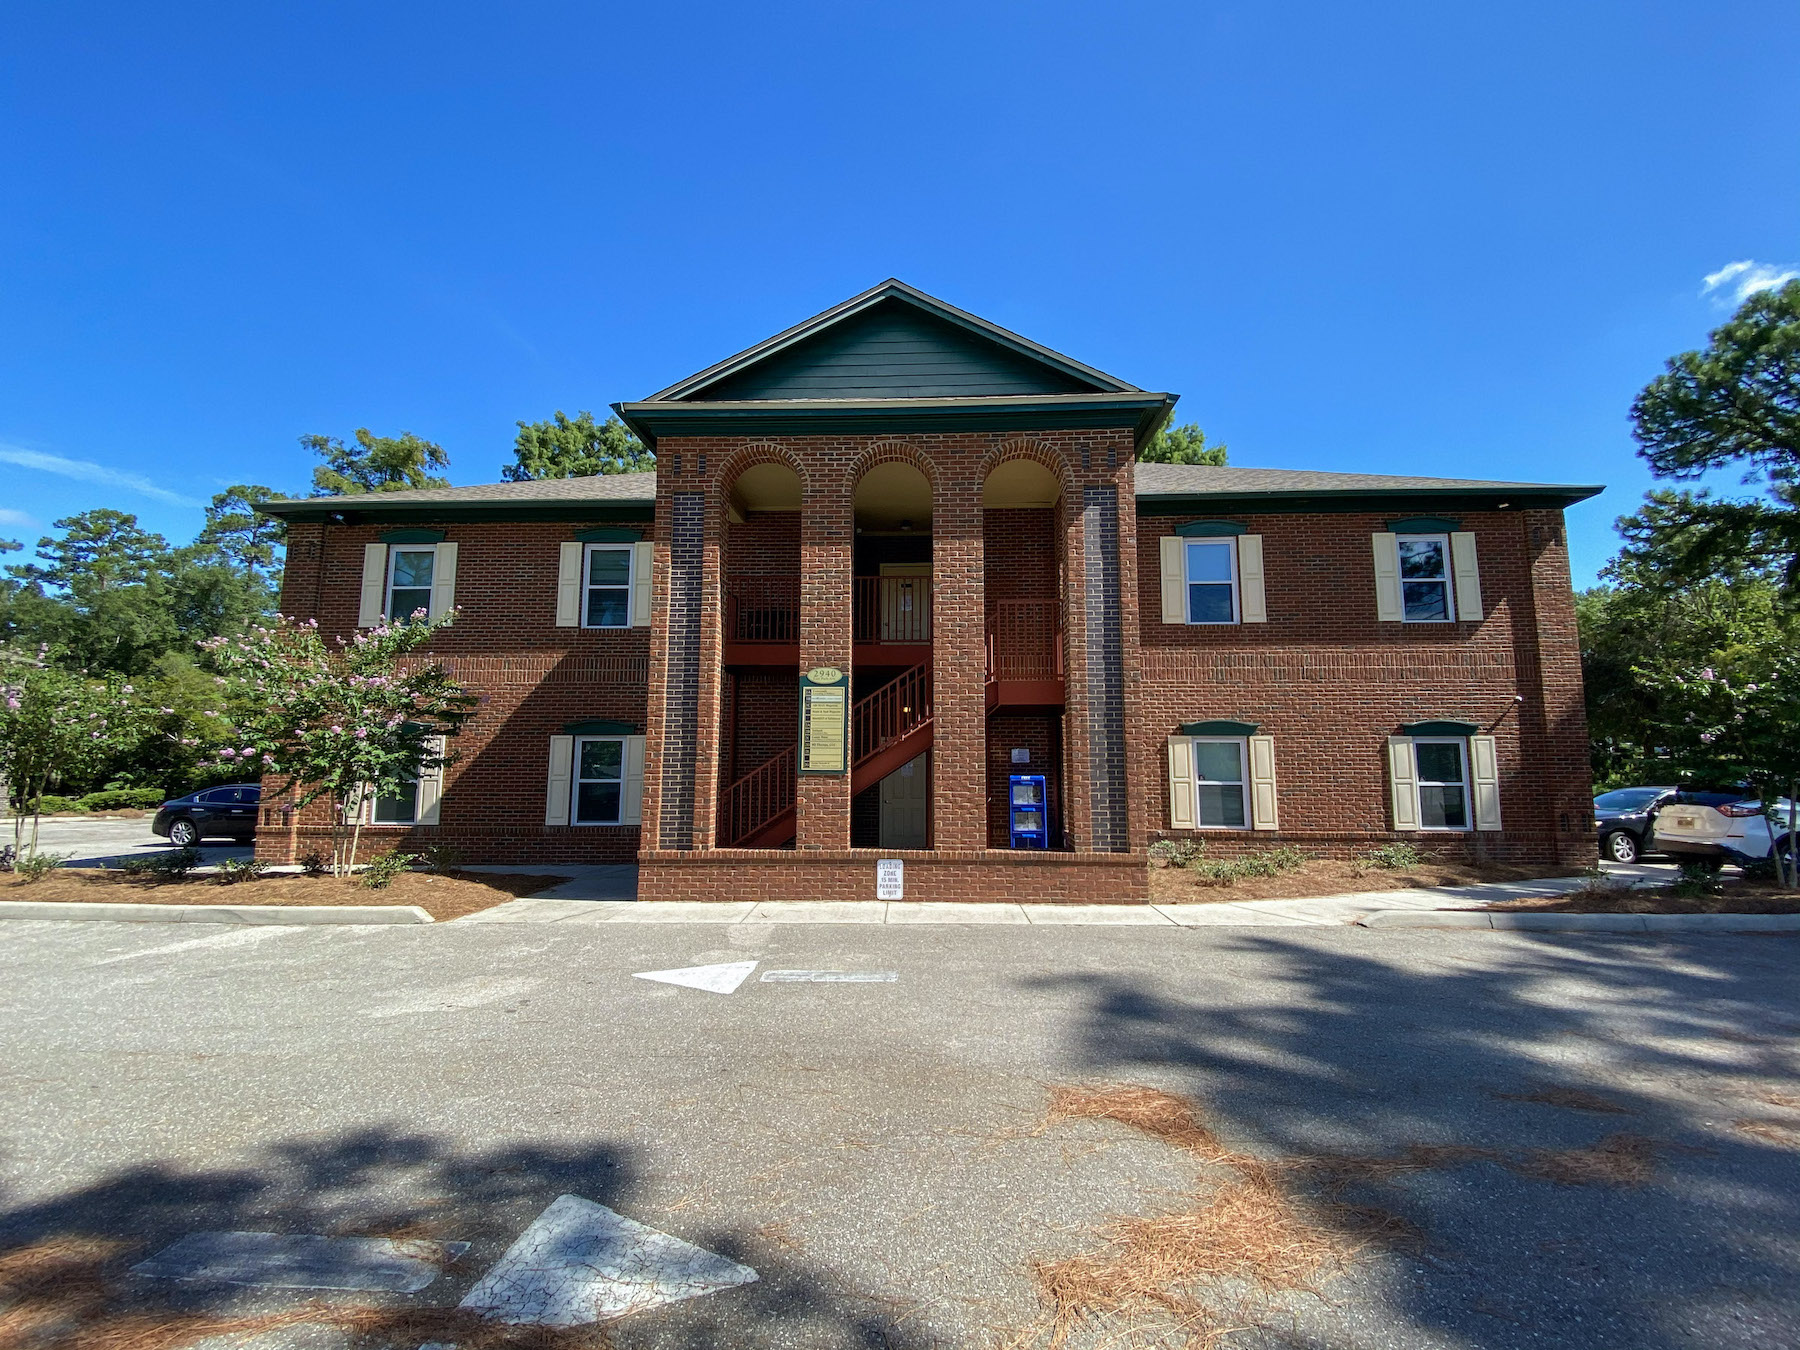 Crossroads Counseling & Wellness Office in Tallahassee, FL